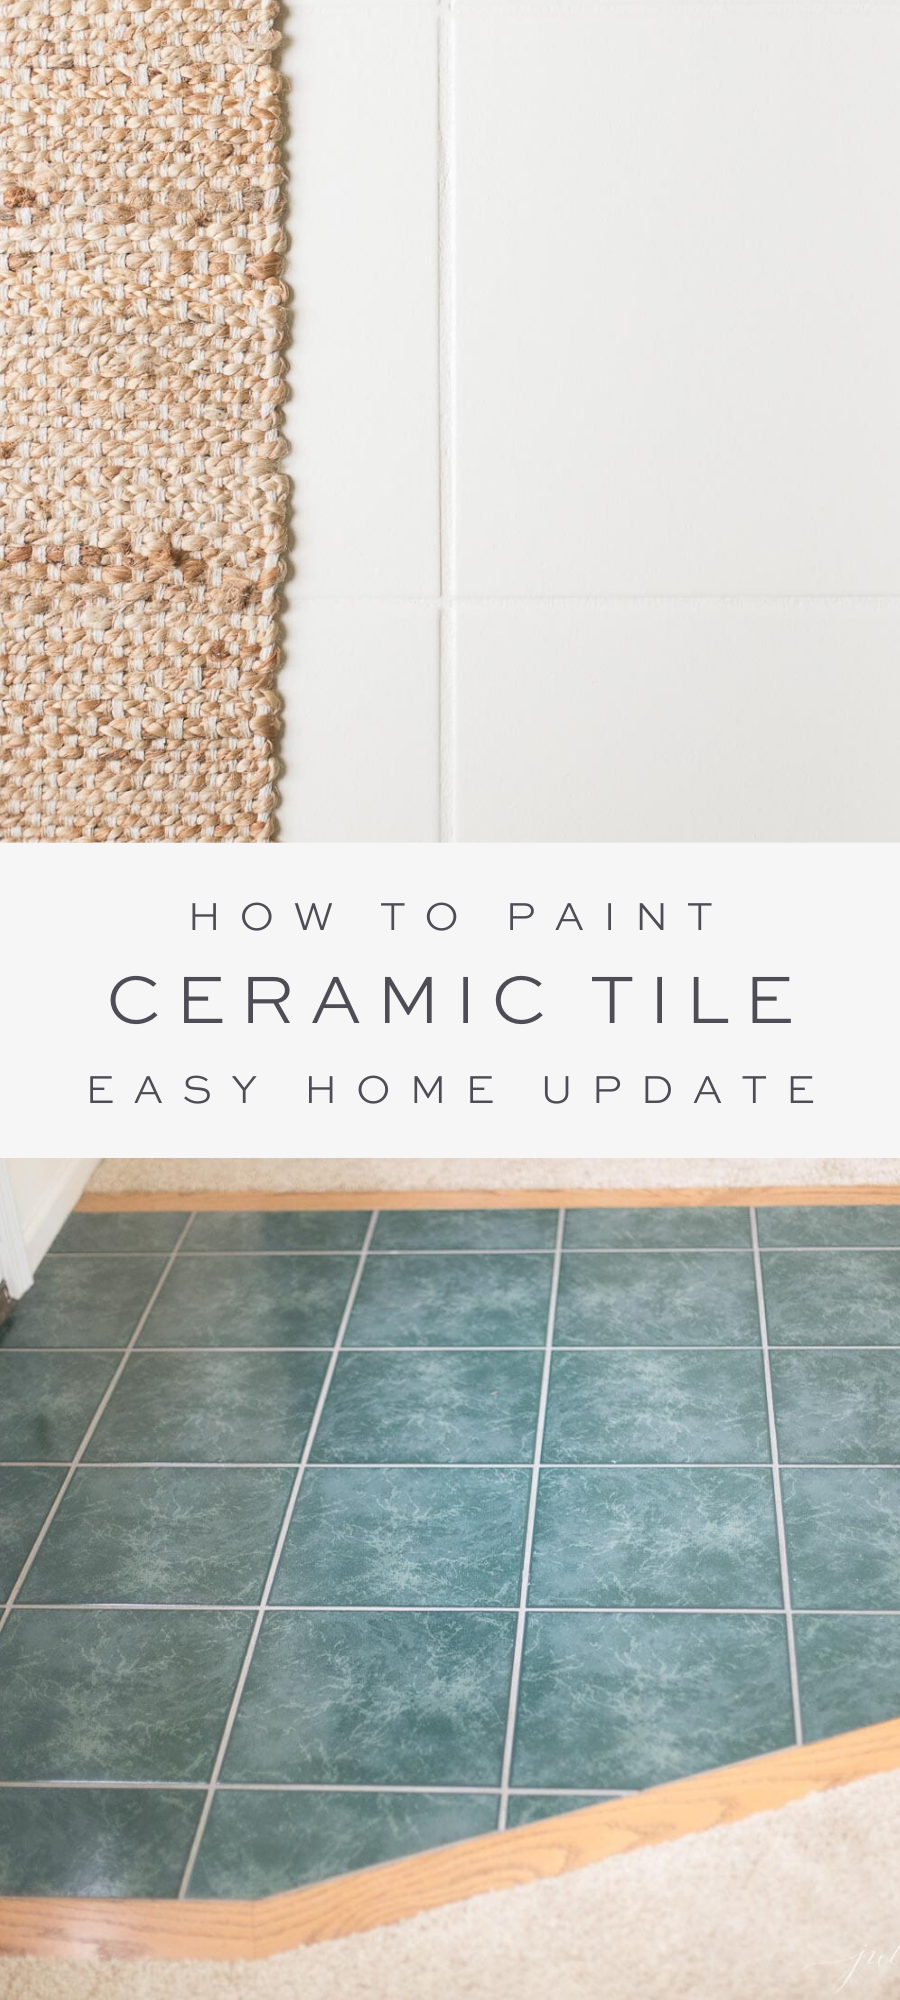 How To Paint Ceramic Tile With Tile Paint For A Quick Beautiful Fix In 2020 Painting Ceramic Tile Floor Painting Ceramic Tiles Painting Tile